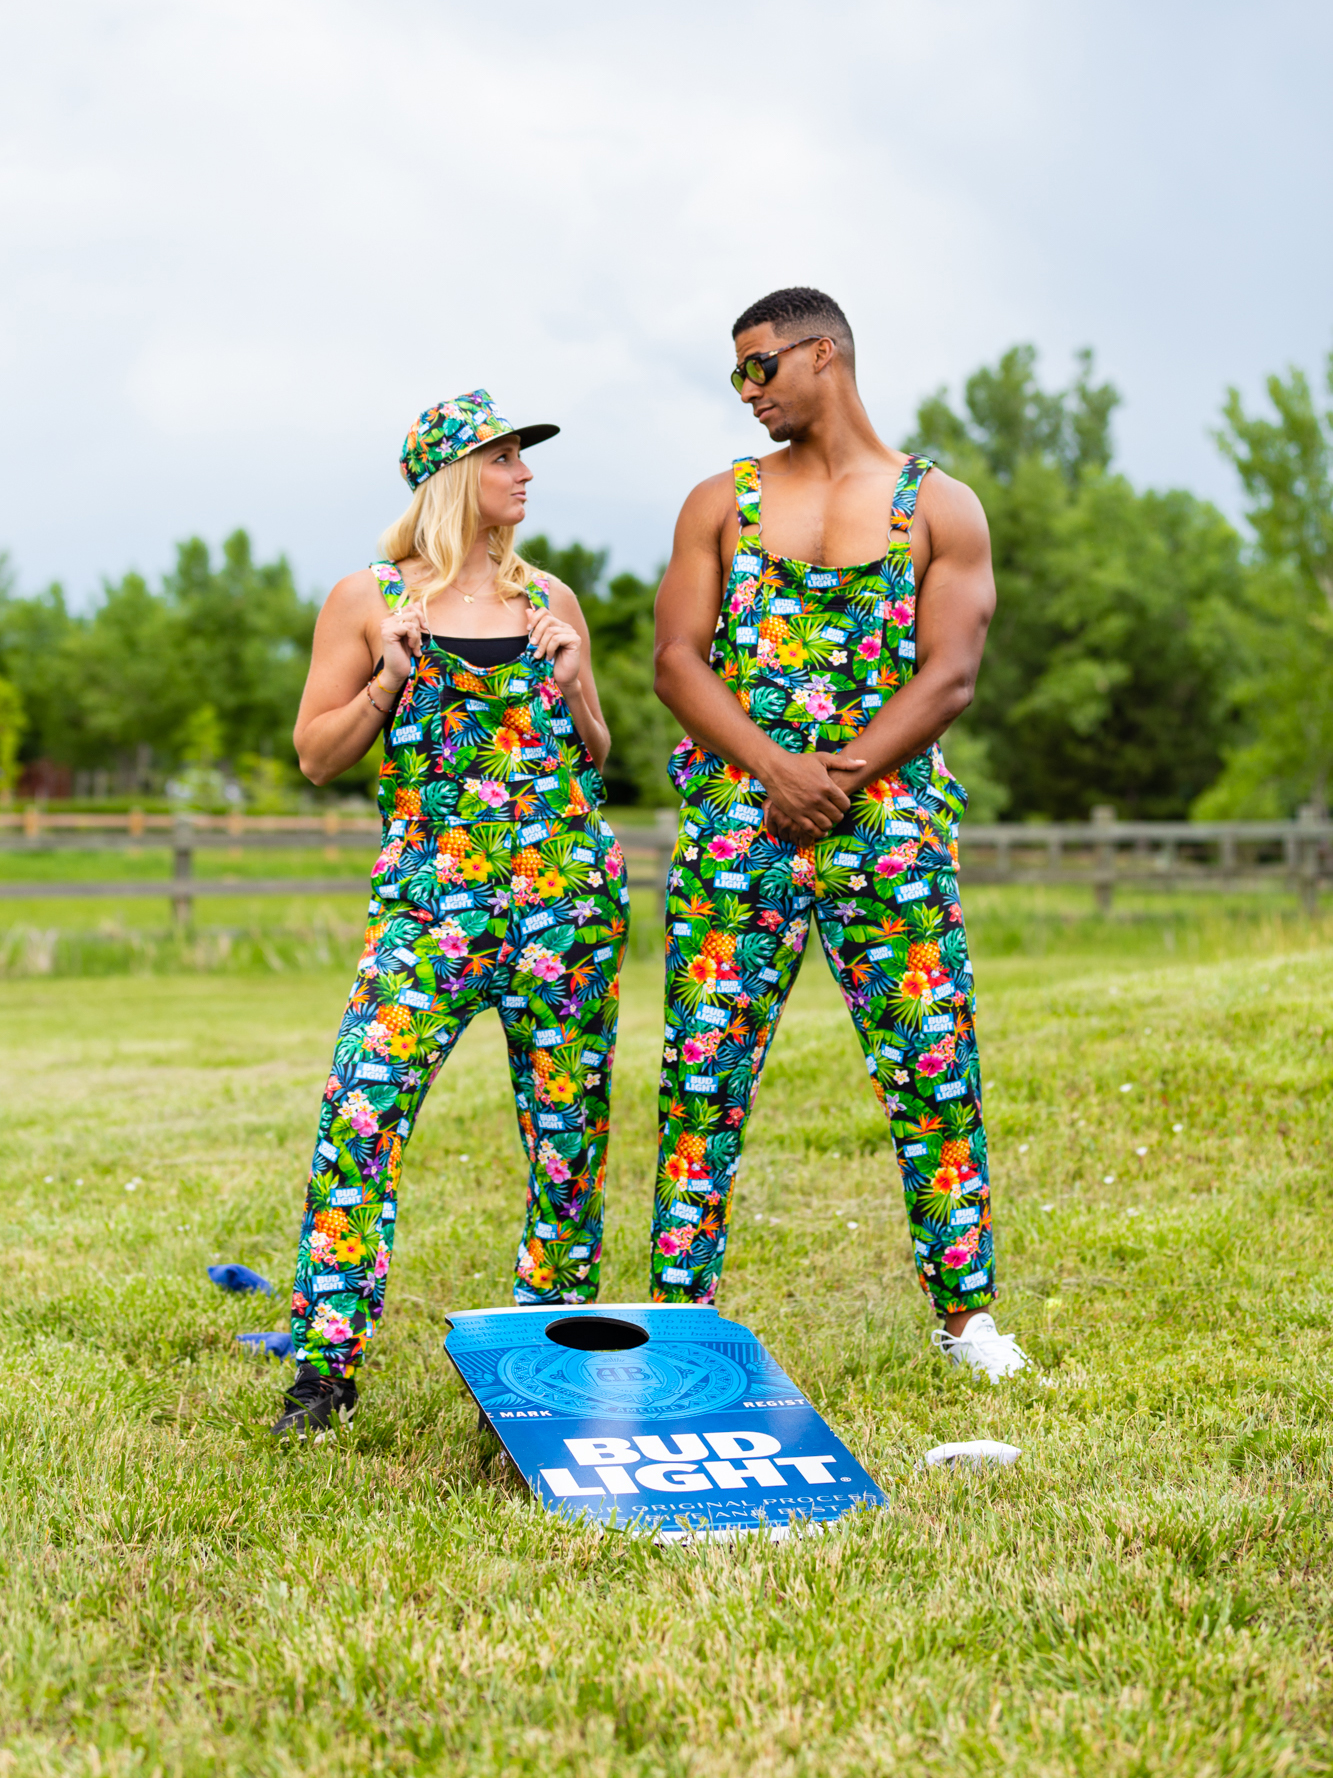 Bud Light's 'Pajameralls' Are Sure to Turn Heads At Your Next Cookout bud-light-pajameralls-VT-BLOG0719